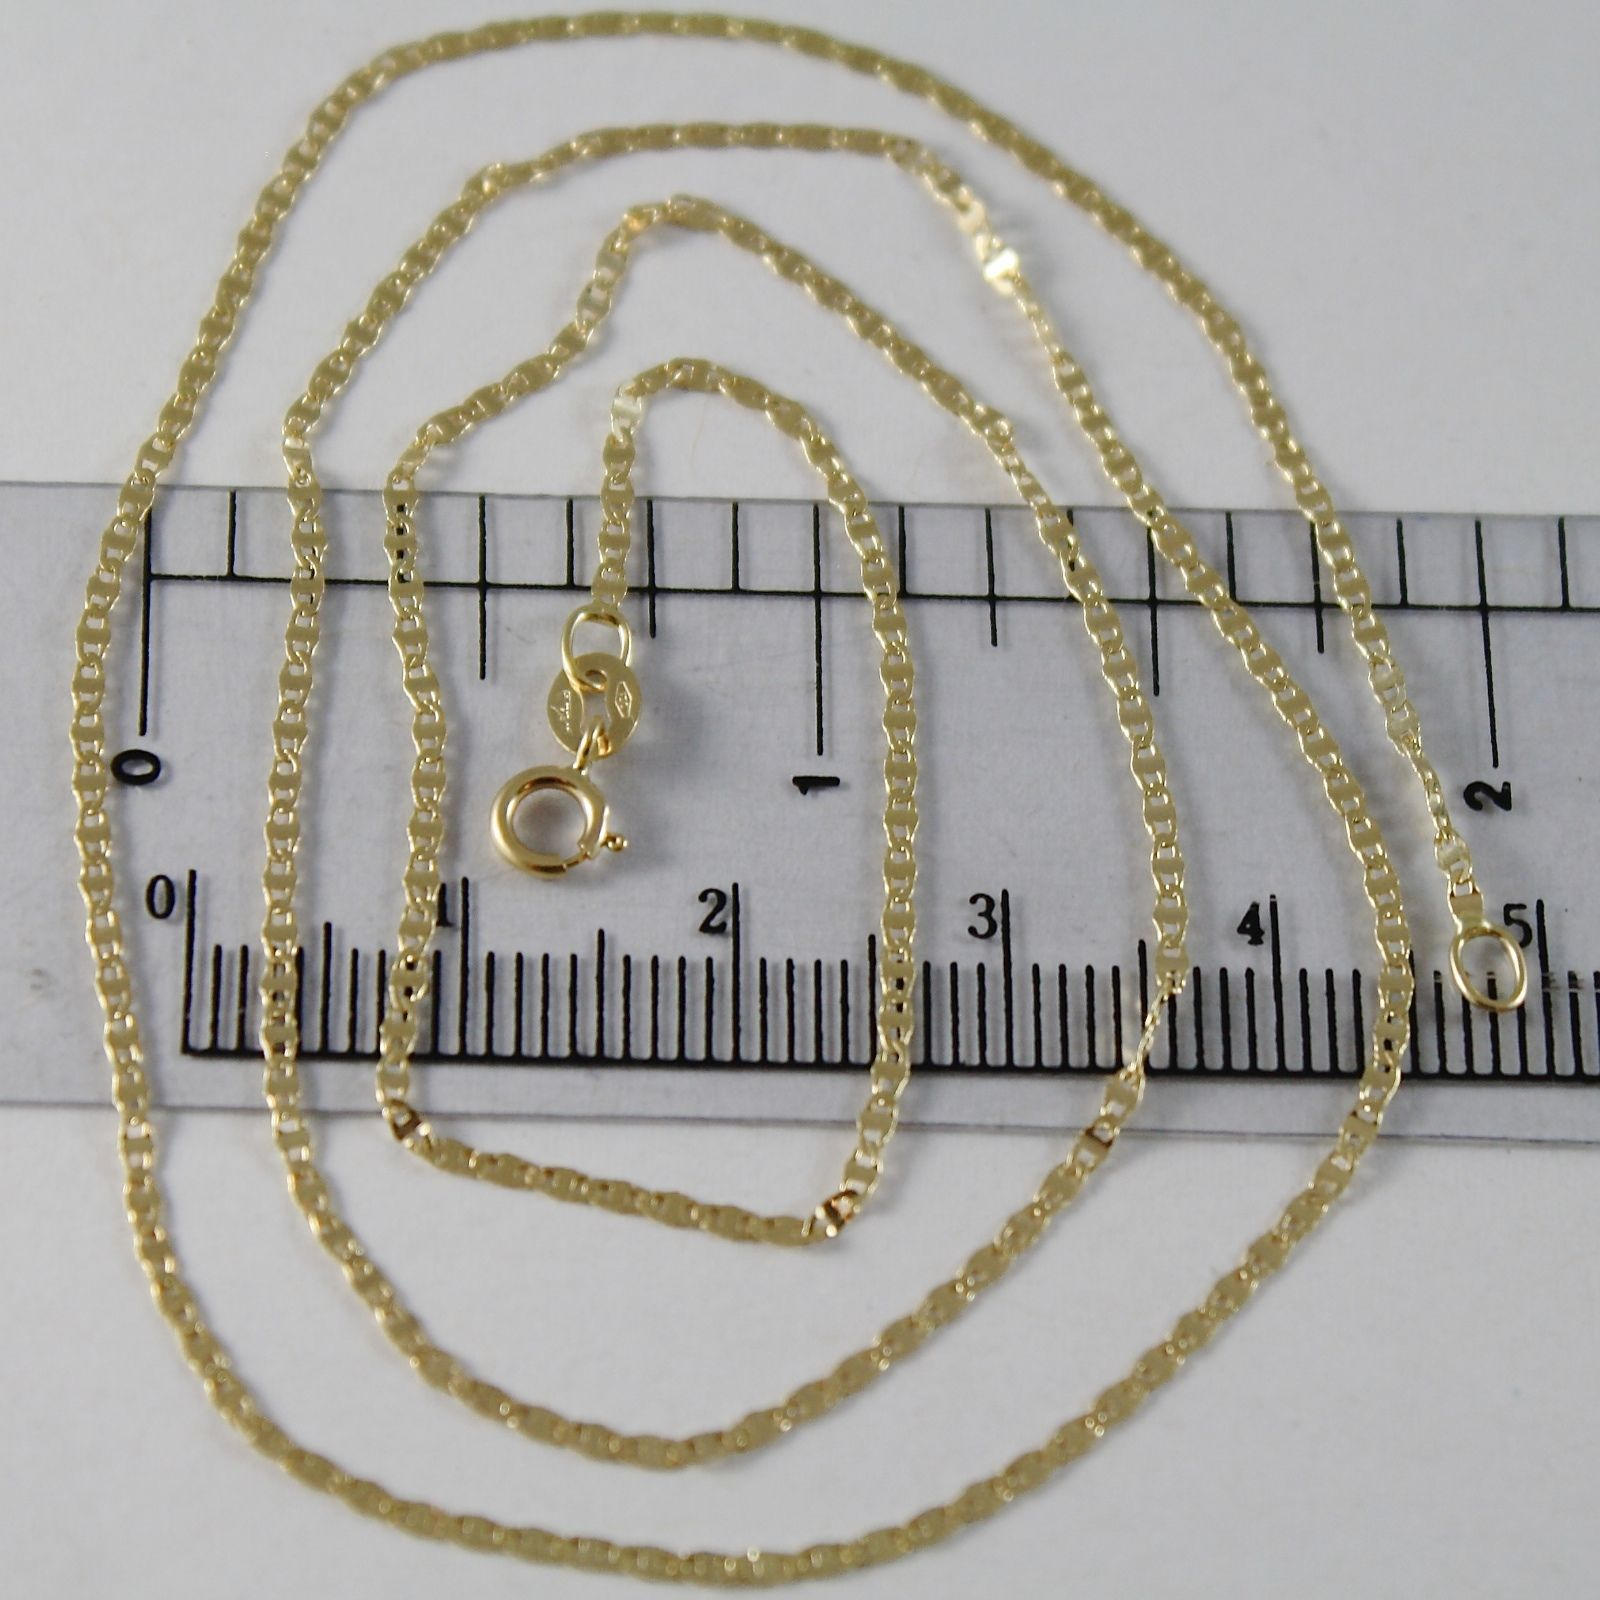 18K YELLOW GOLD CHAIN MINI OVAL FLAT MESH 1 MM WIDTH 19.70 INCHES MADE IN ITALY